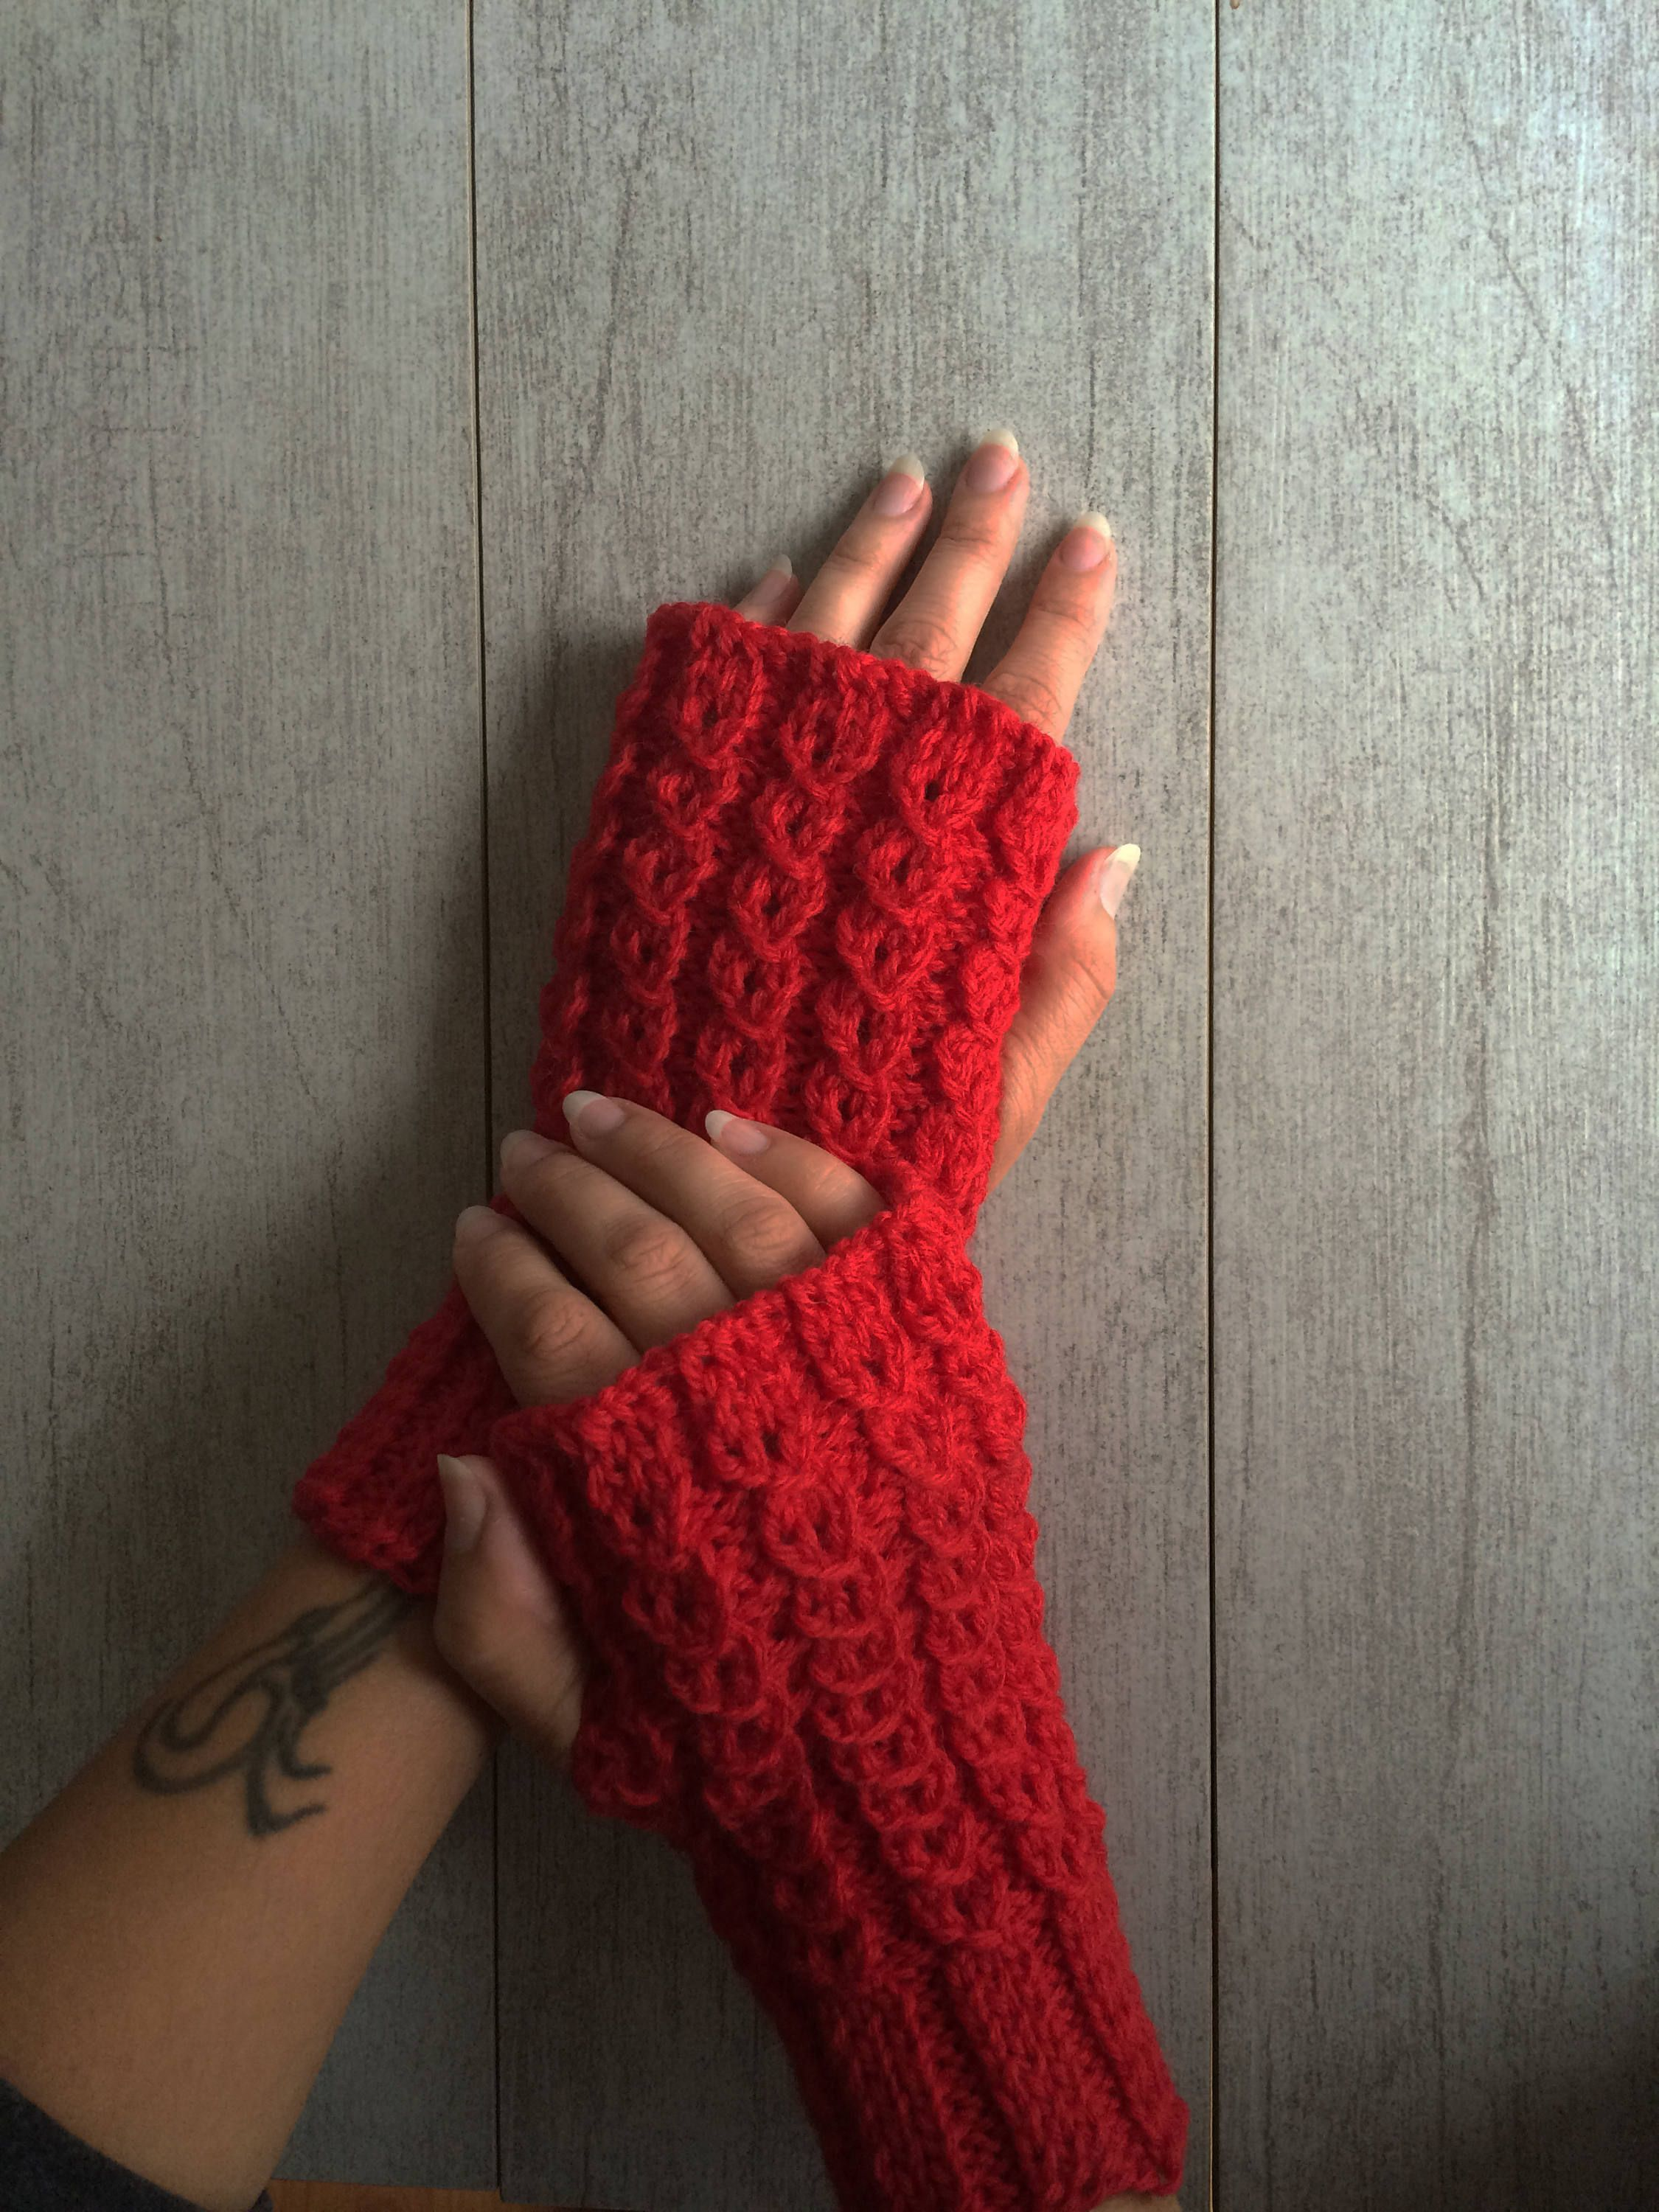 Red Knitted Fingerless Gloves Fingerless Mittens Stunning Warm And Cozy Fall And Winter Fashion Women Fingerless Gloves Knitted Fingerless Fingerless Gloves